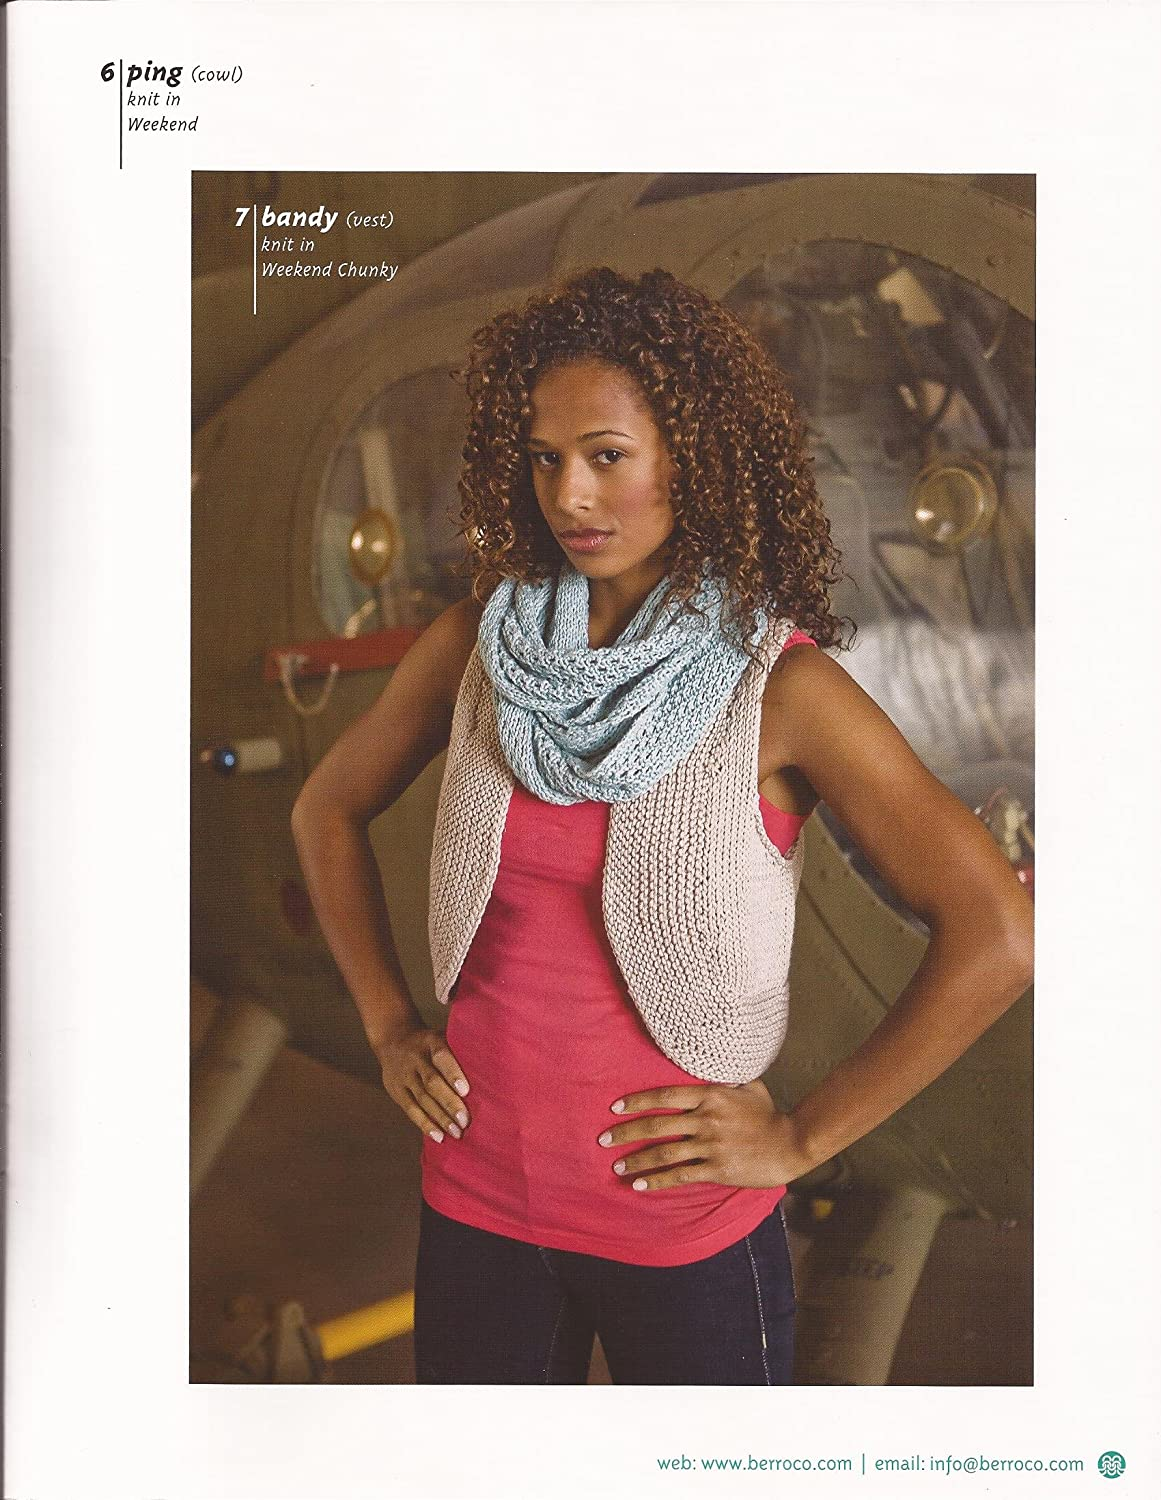 Berroco Book 309 Weekend and Weekend Chunky Knitting Pattern Book